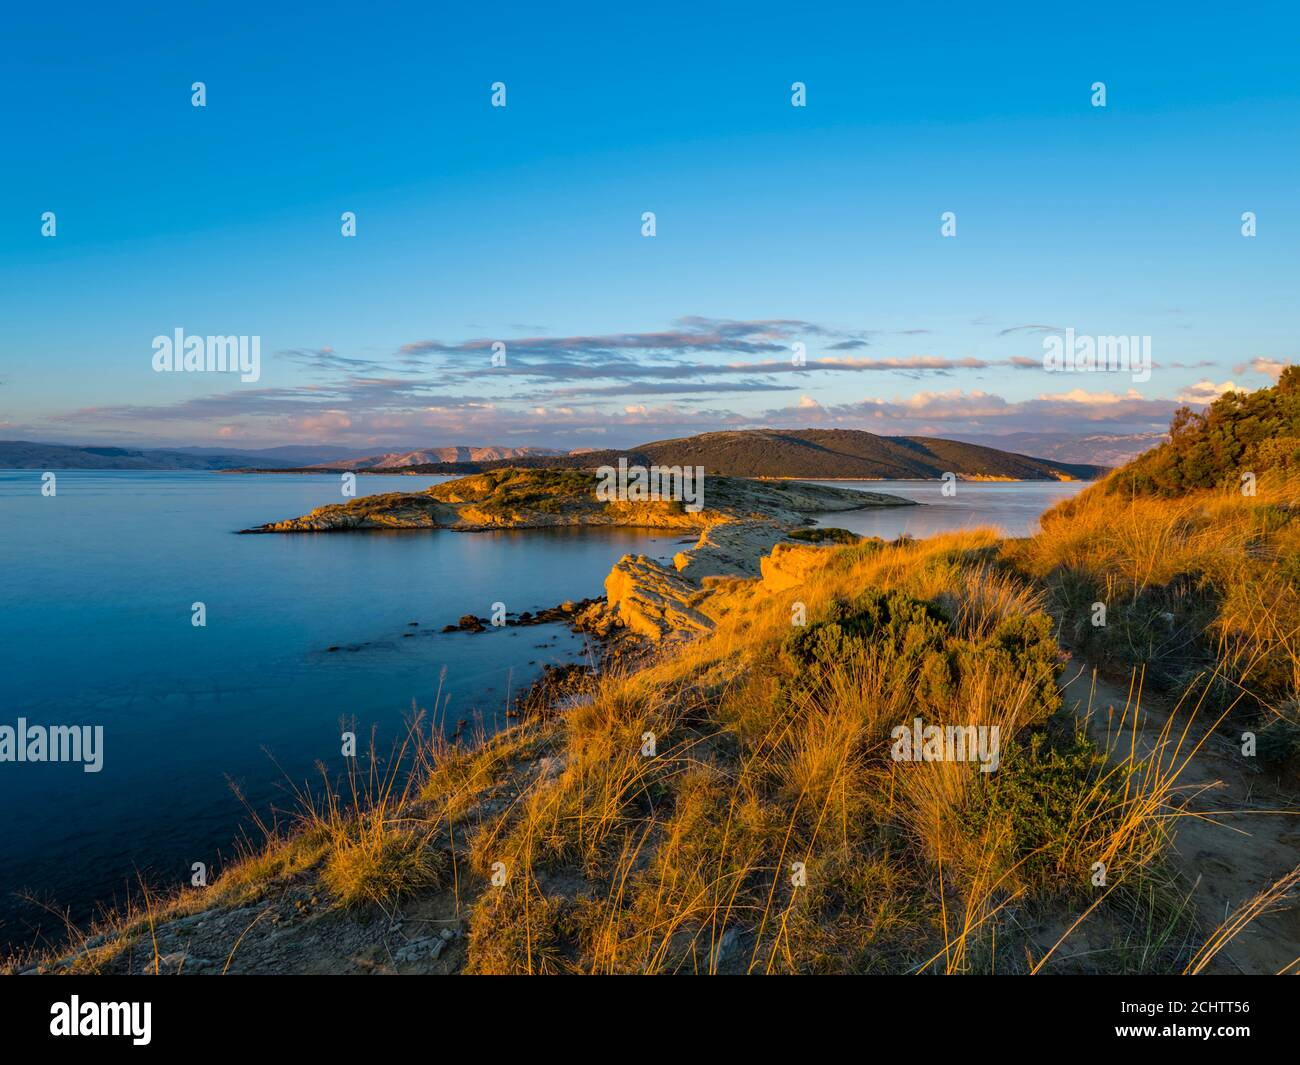 Long exposure smooth sea water surface picturesque peaceful tranquility panoramic atmospheric zen sunset warmth in Lopar on Rab island Croatia Europe Stock Photo